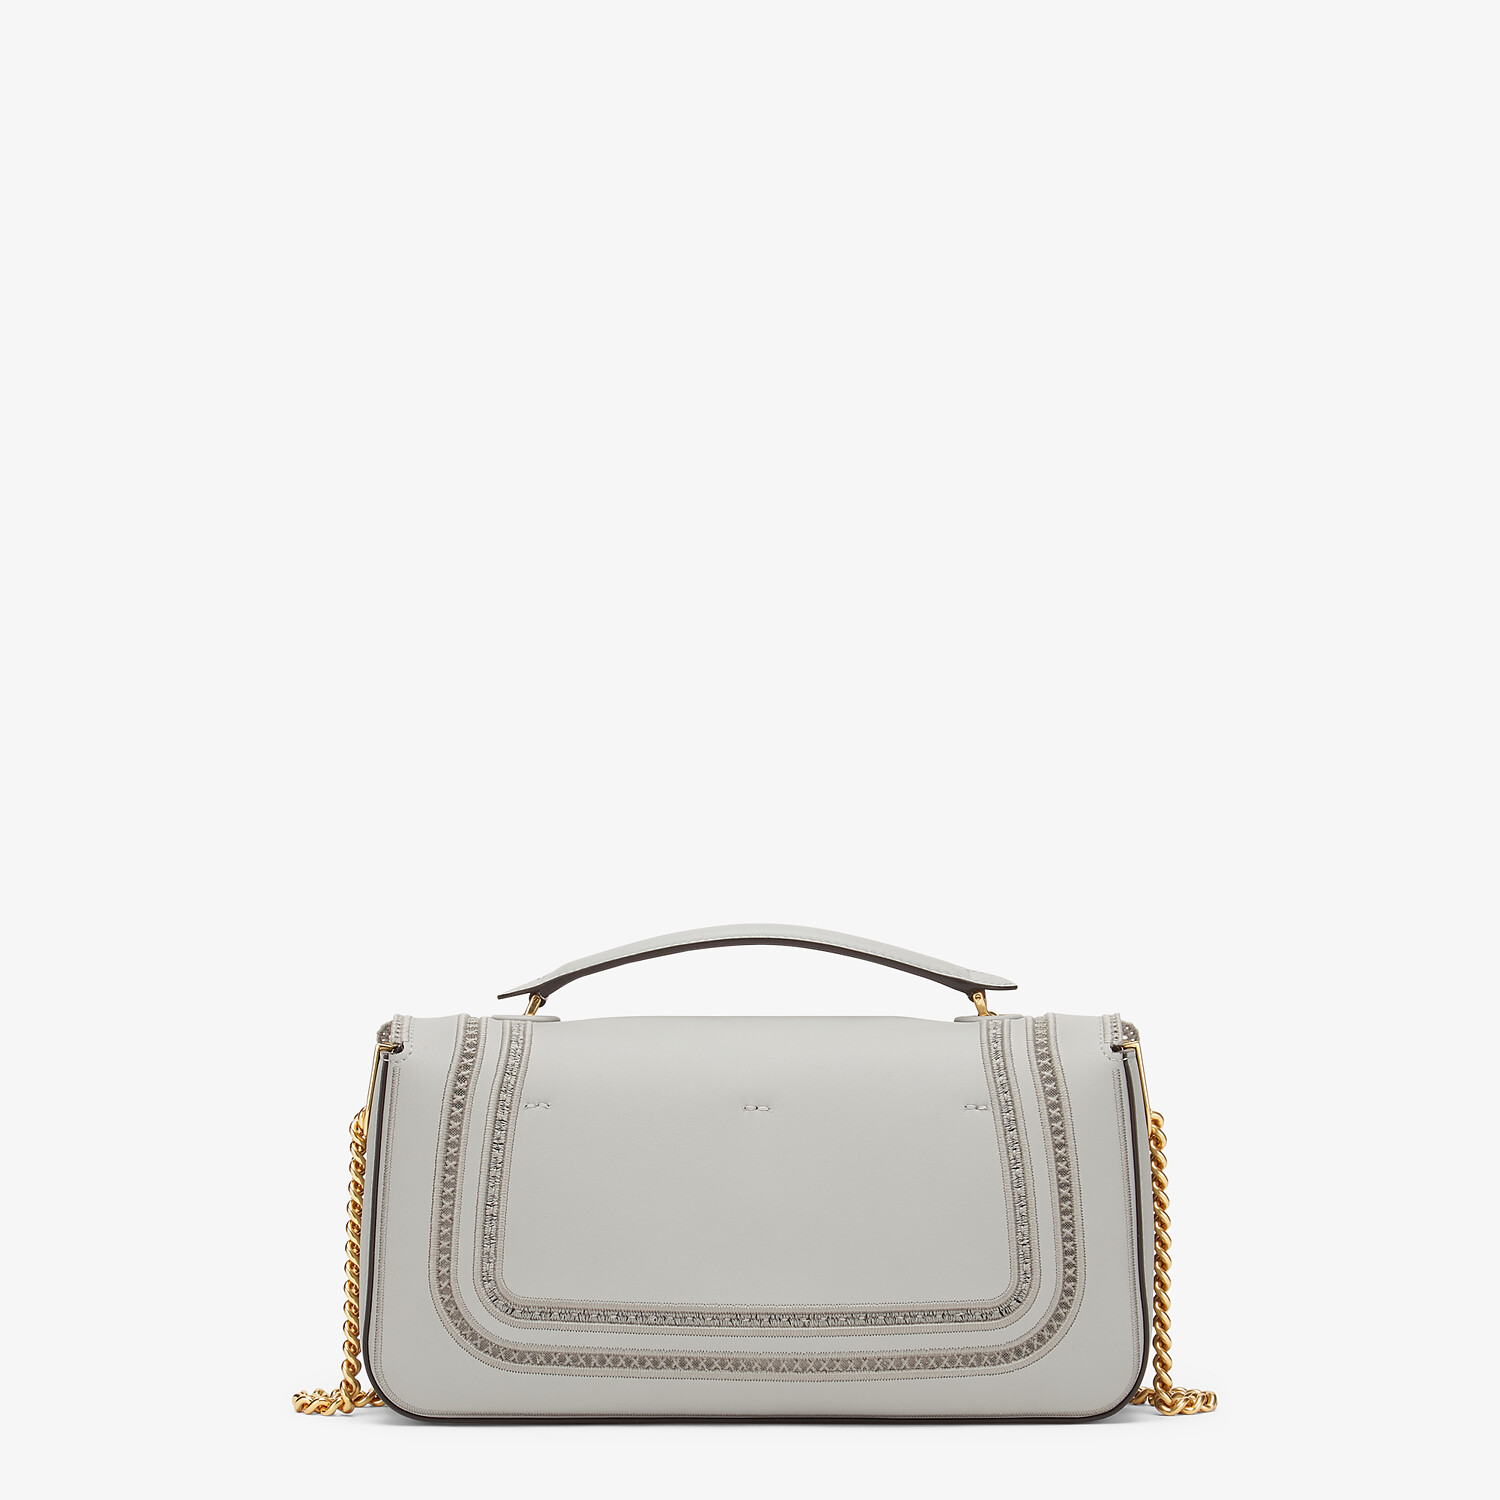 FENDI BAGUETTE CHAIN - Embroidered grey leather bag - view 3 detail